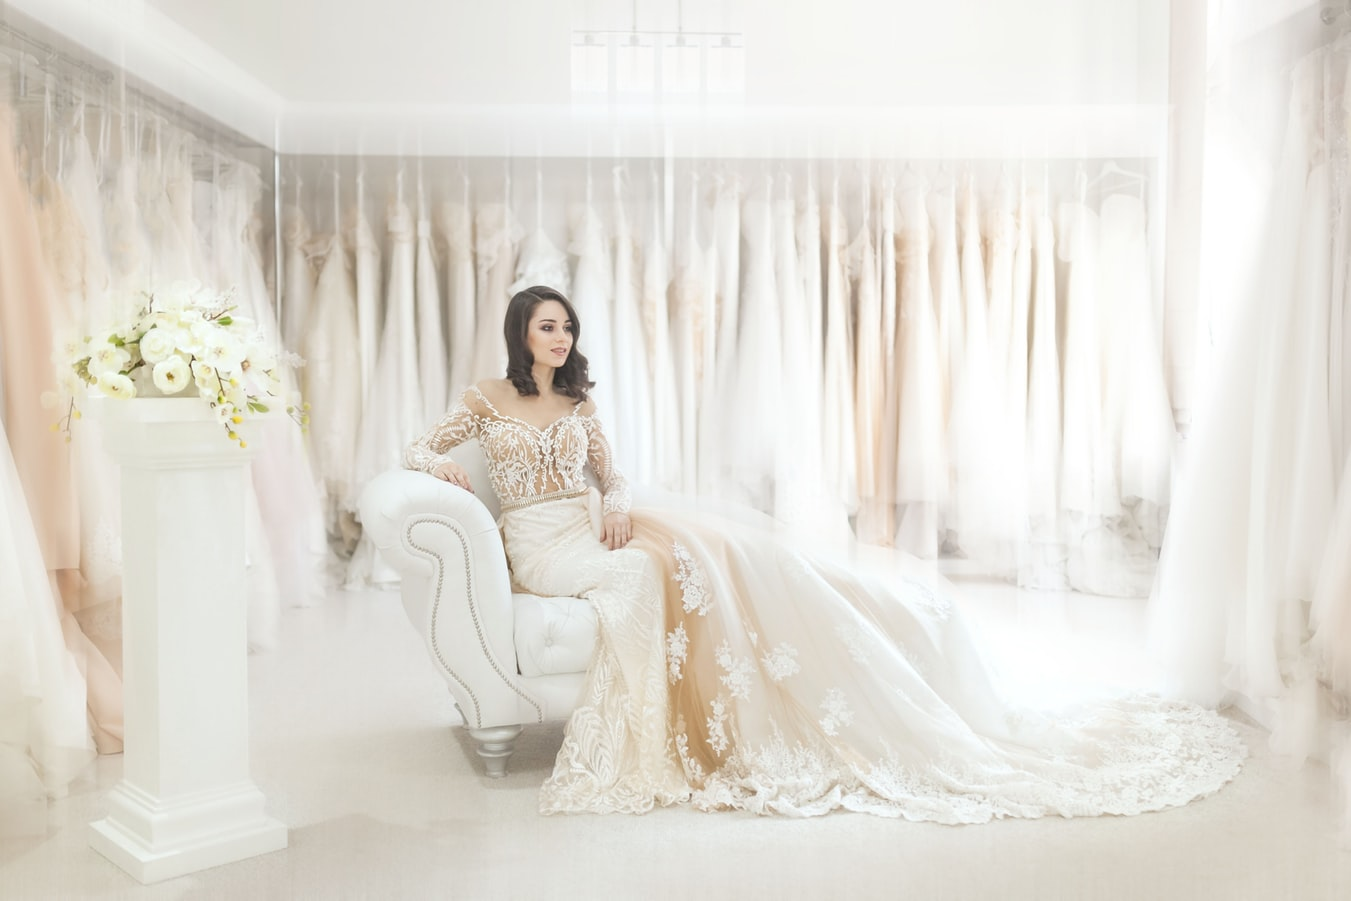 Who Should You Bring Wedding Dress Shopping?